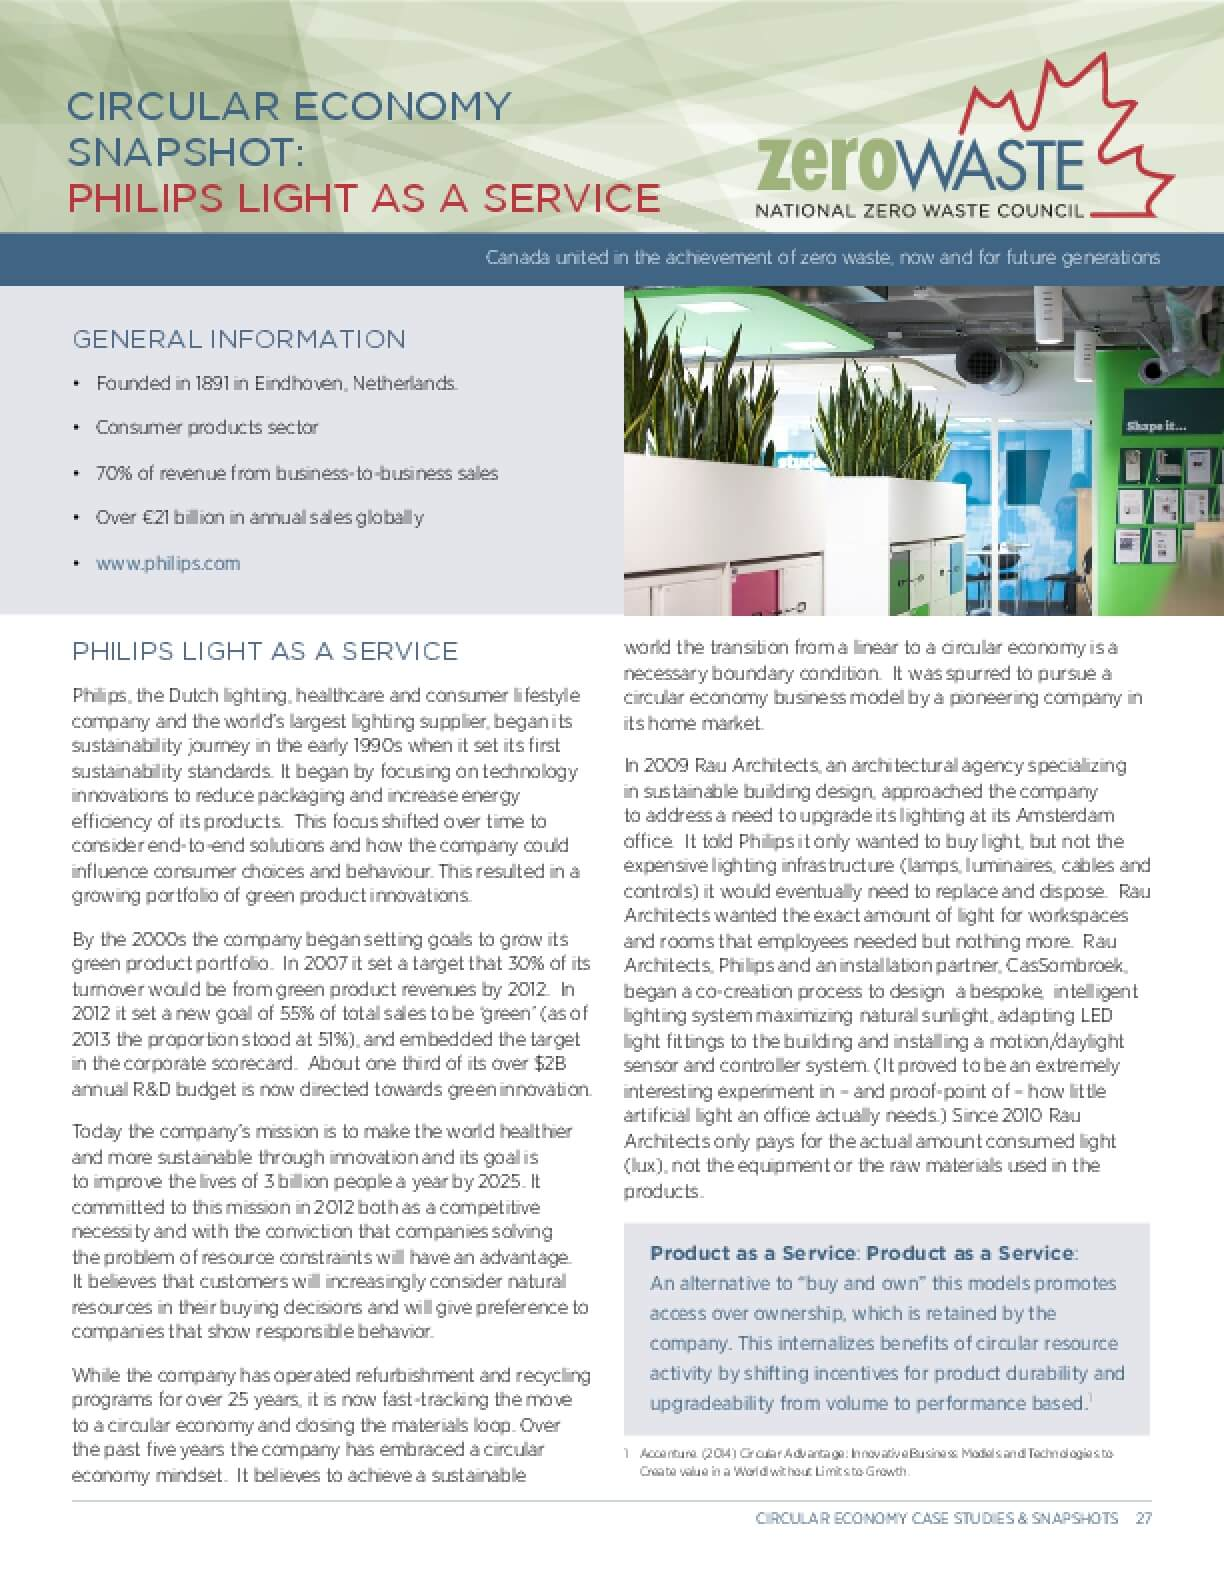 Circular Economy Snapshot: Philips Light as a Service